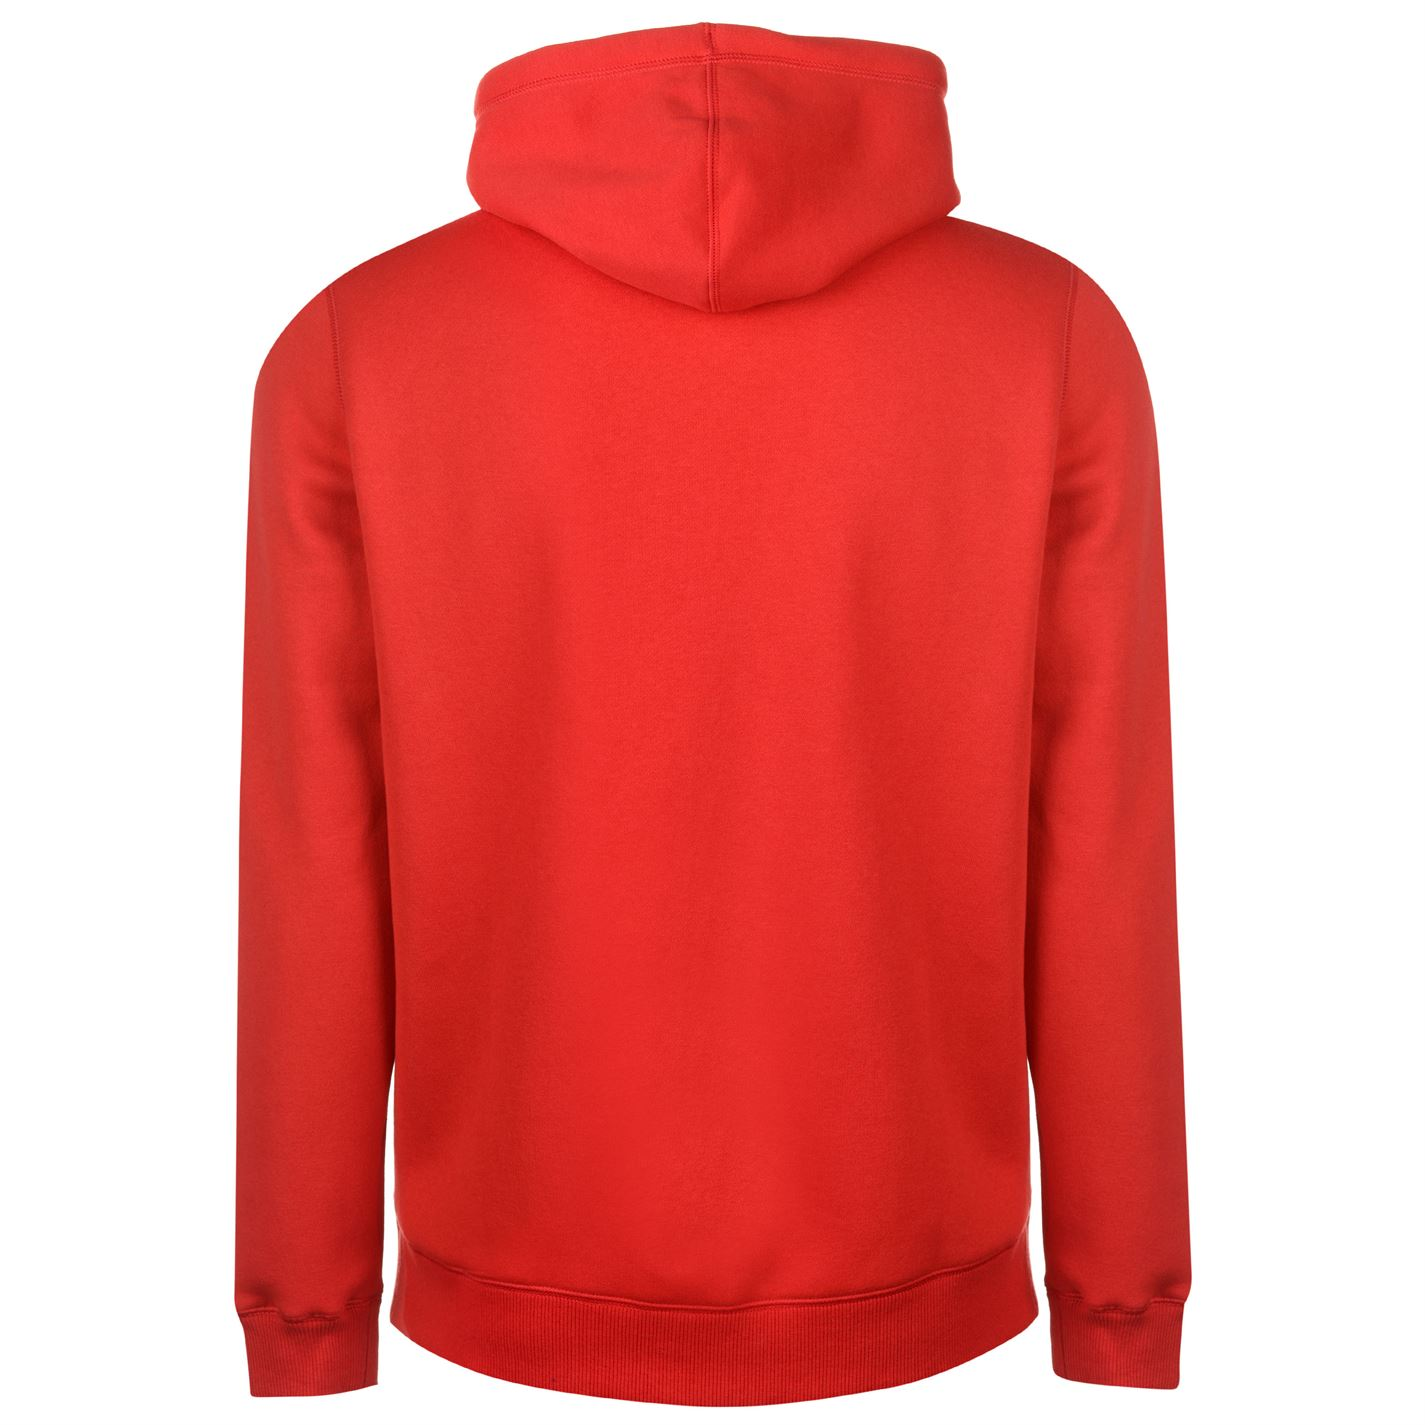 Under-Armour-Mens-Rival-Fitted-Full-Zip-Hoody-Hoodie-Hooded-Top-Breathable-Mesh thumbnail 11